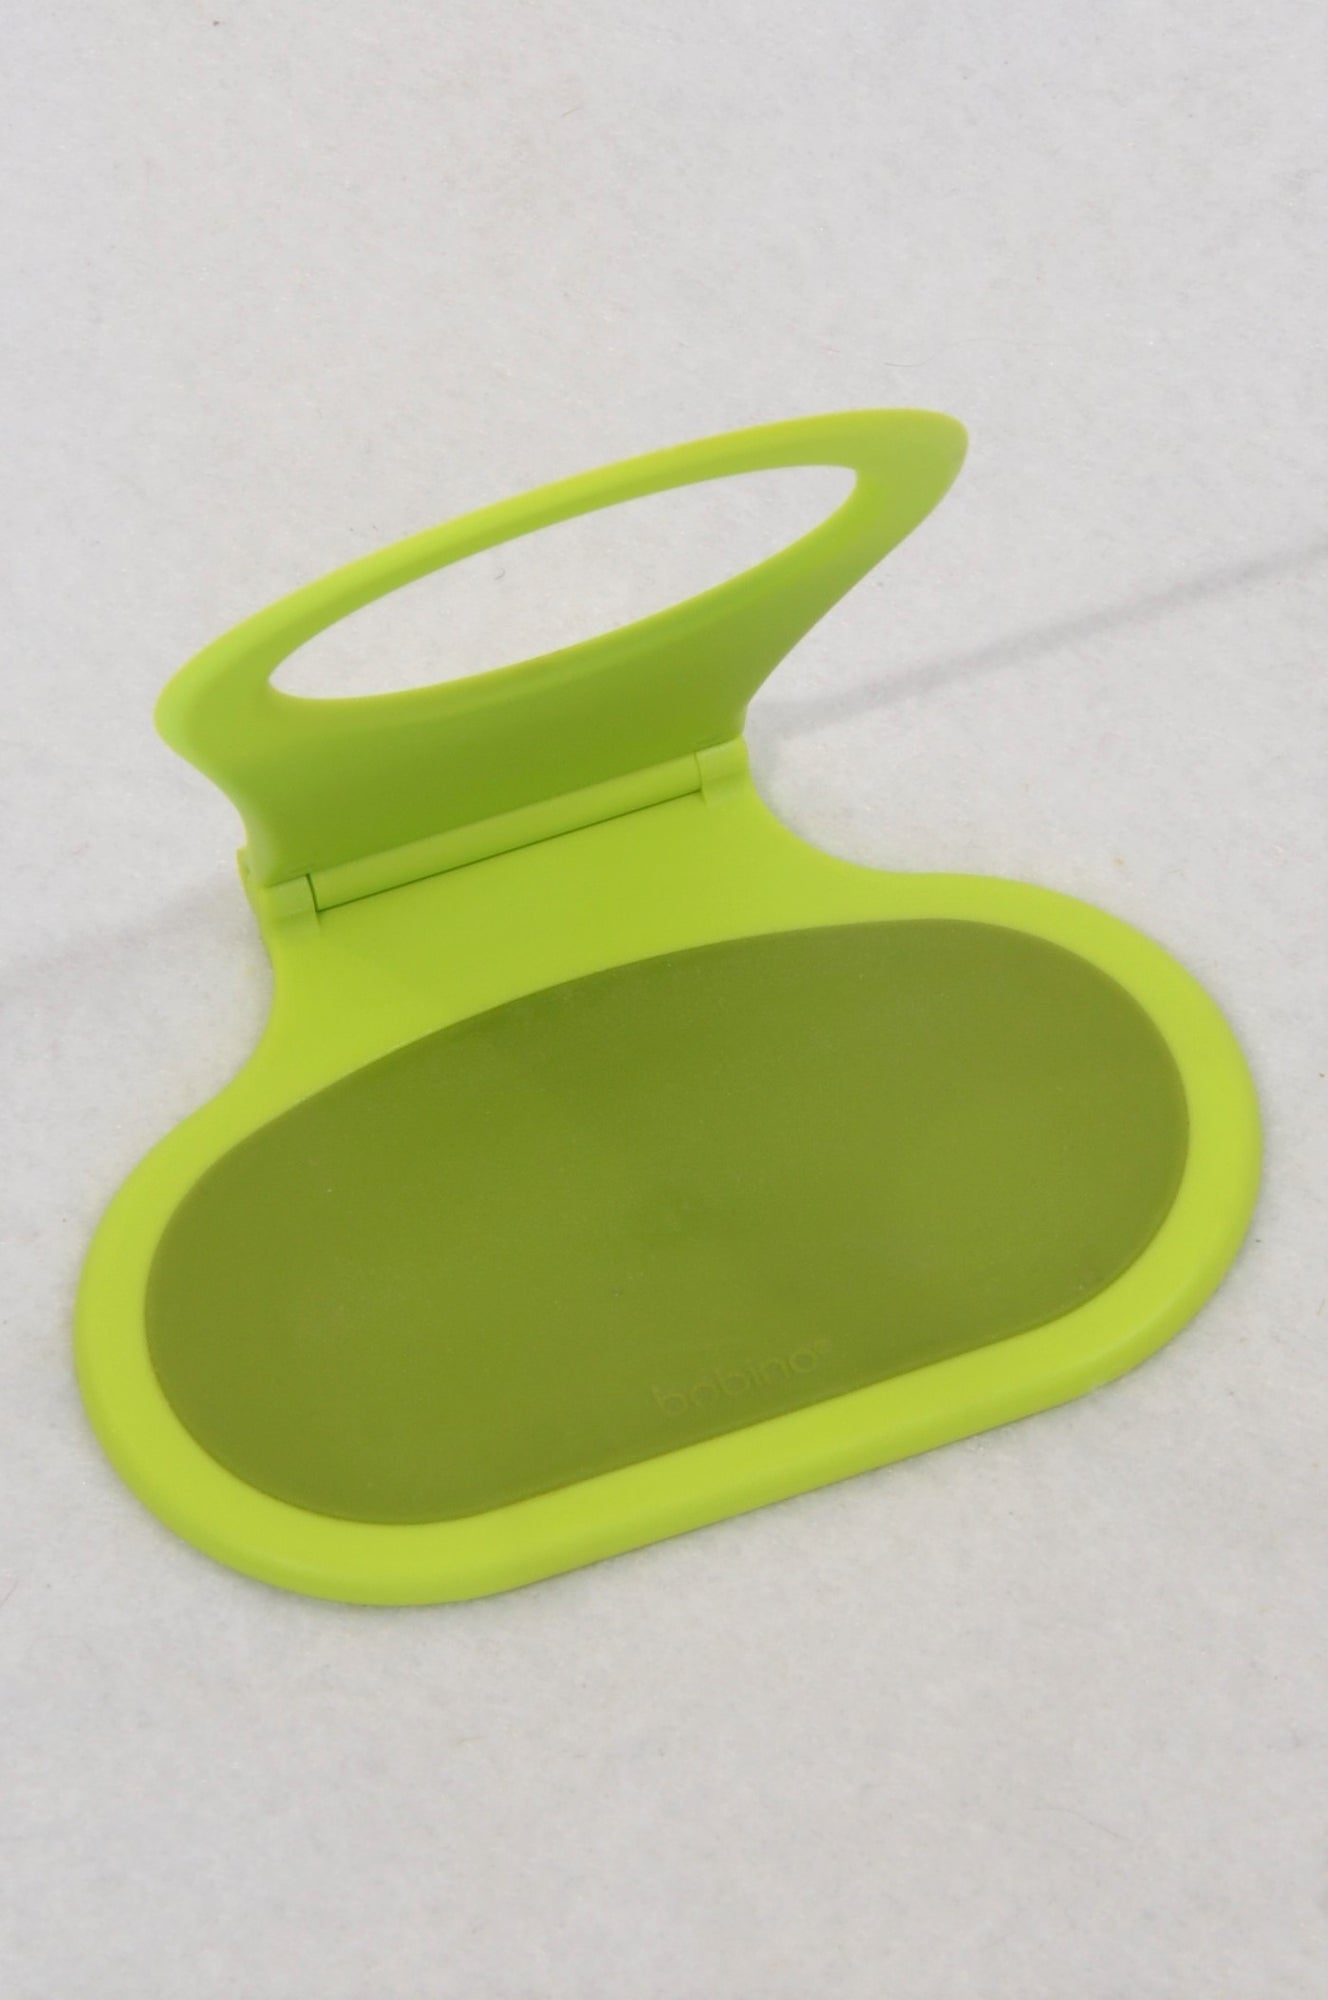 Unbranded Green Phone Holder & Chord Wrap Accessory Unisex 11-15 years